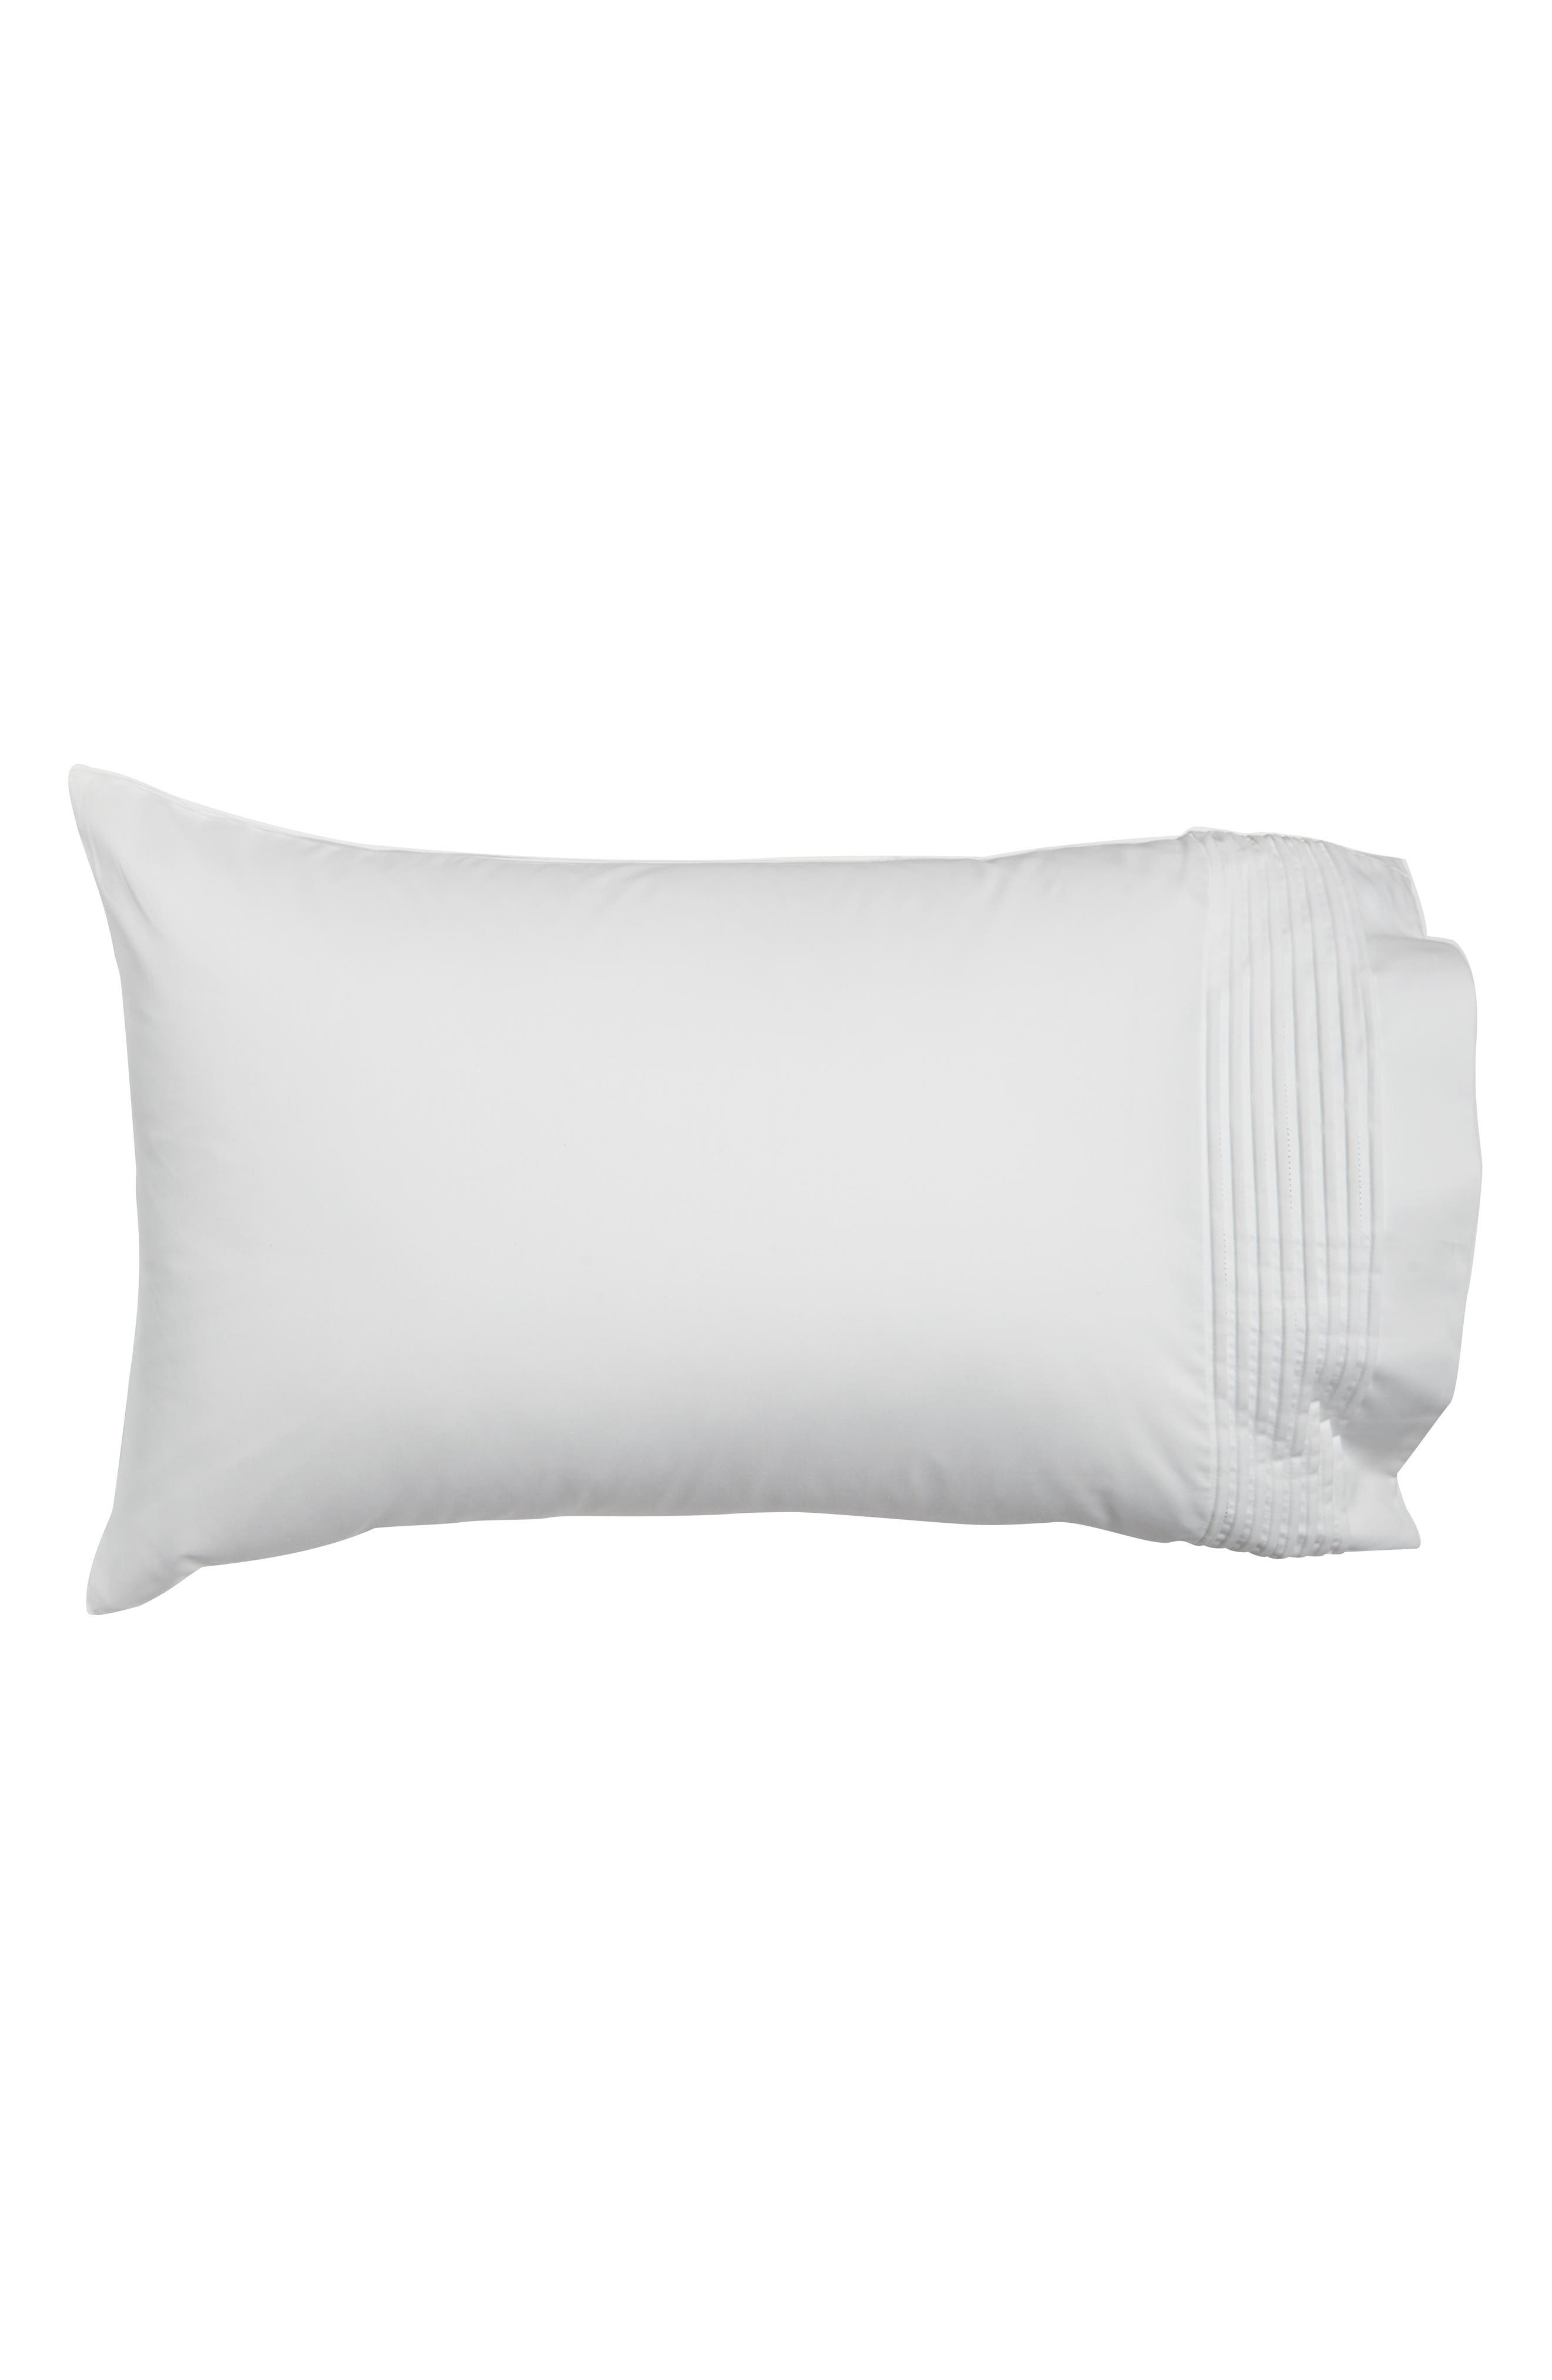 Mirrored Square 400 Thread Count Pillowcases,                             Main thumbnail 1, color,                             100